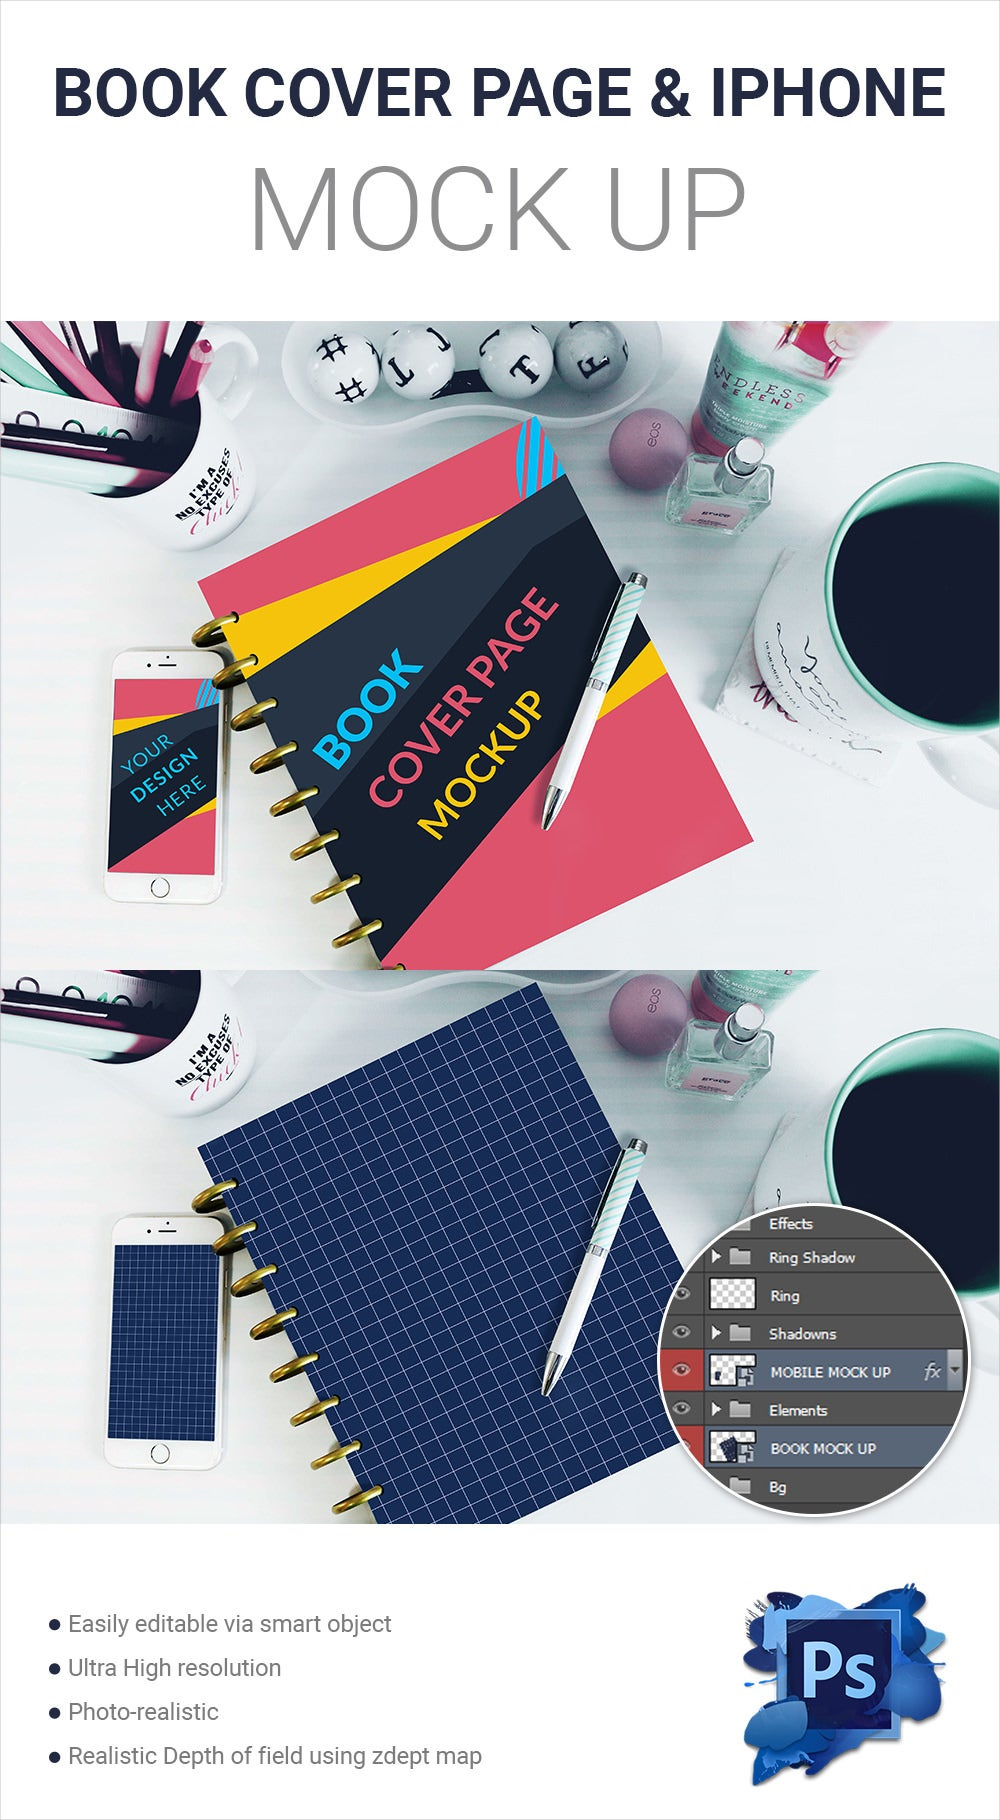 Book Cover Page U0026 IPhone Mockup Free Download  Free Cover Page Templates For Word